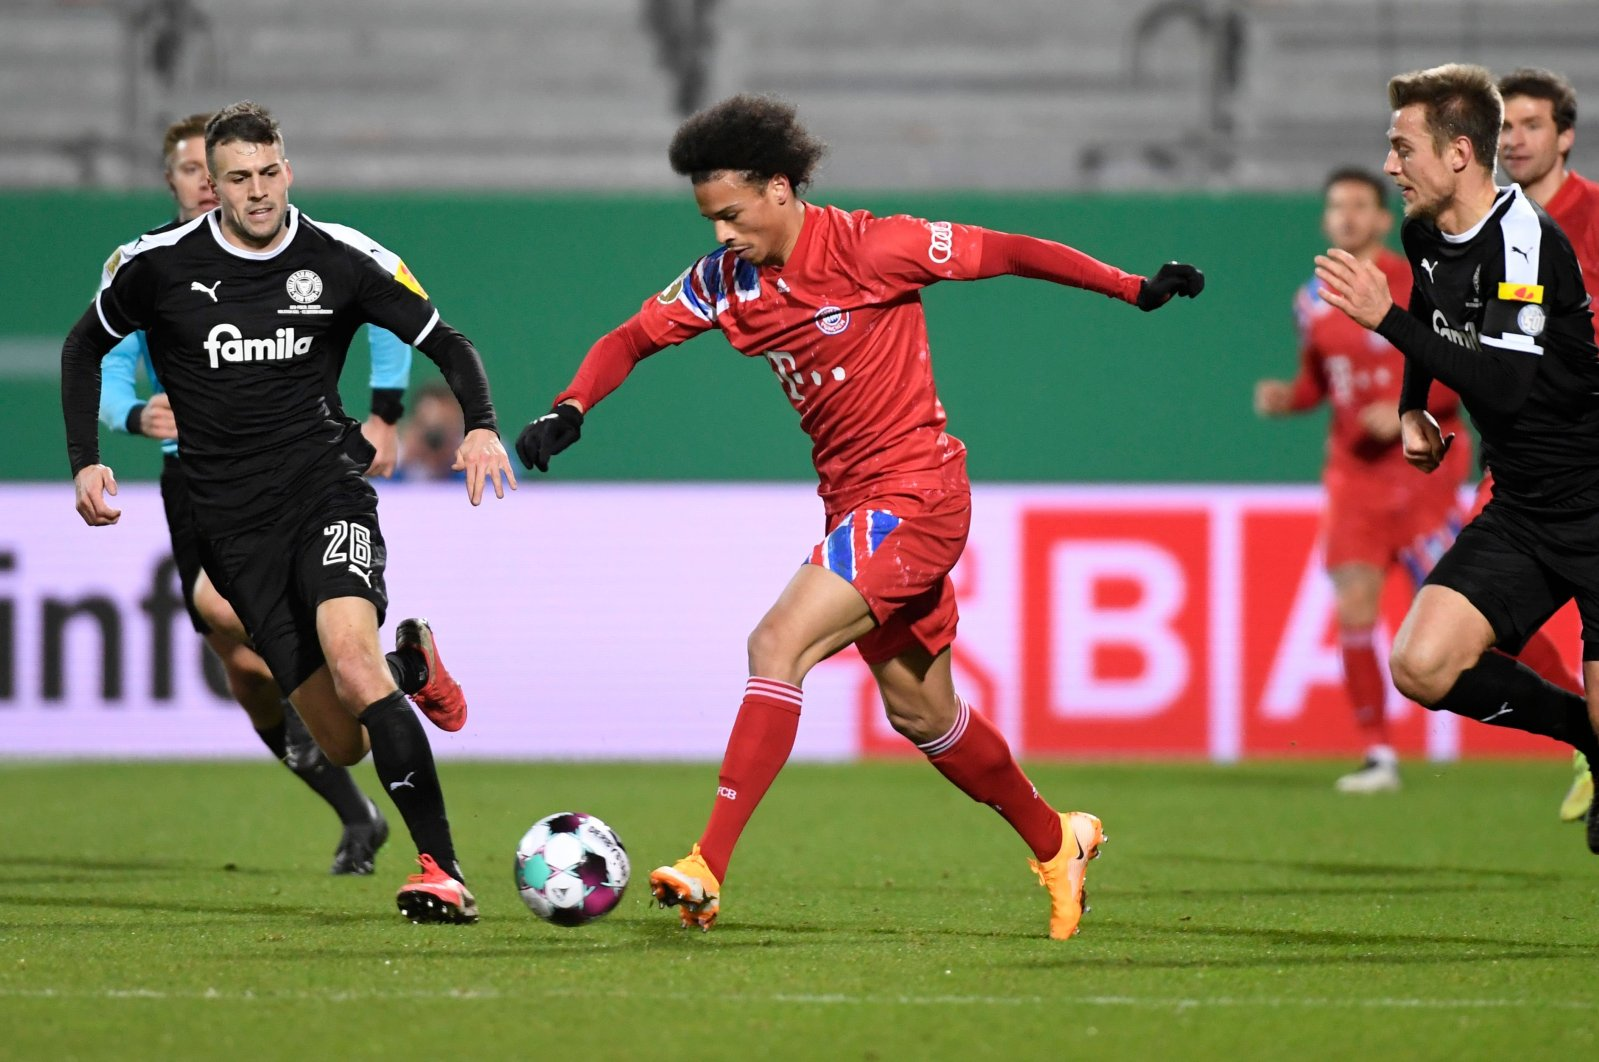 Bayern Munich's Leroy Sane (C) vies for the ball with Holstein Kiel's Jonas Meffert (L) during a match in Kiel, Germany, Jan. 13, 2021. (AFP PHOTO)